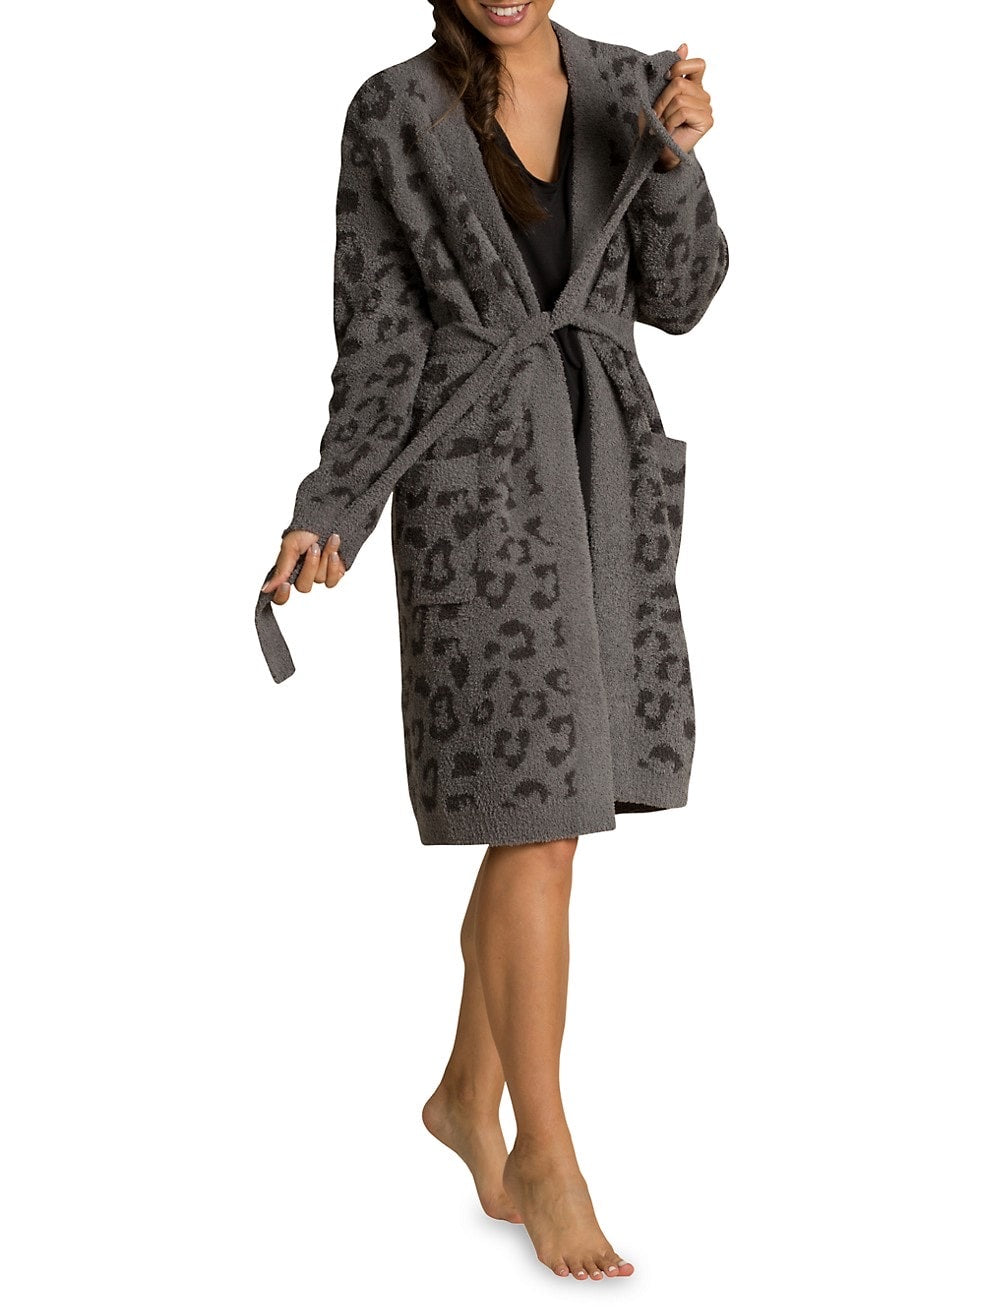 CozyChic® Barefoot in the Wild® Robe Color Graphite - Carbon